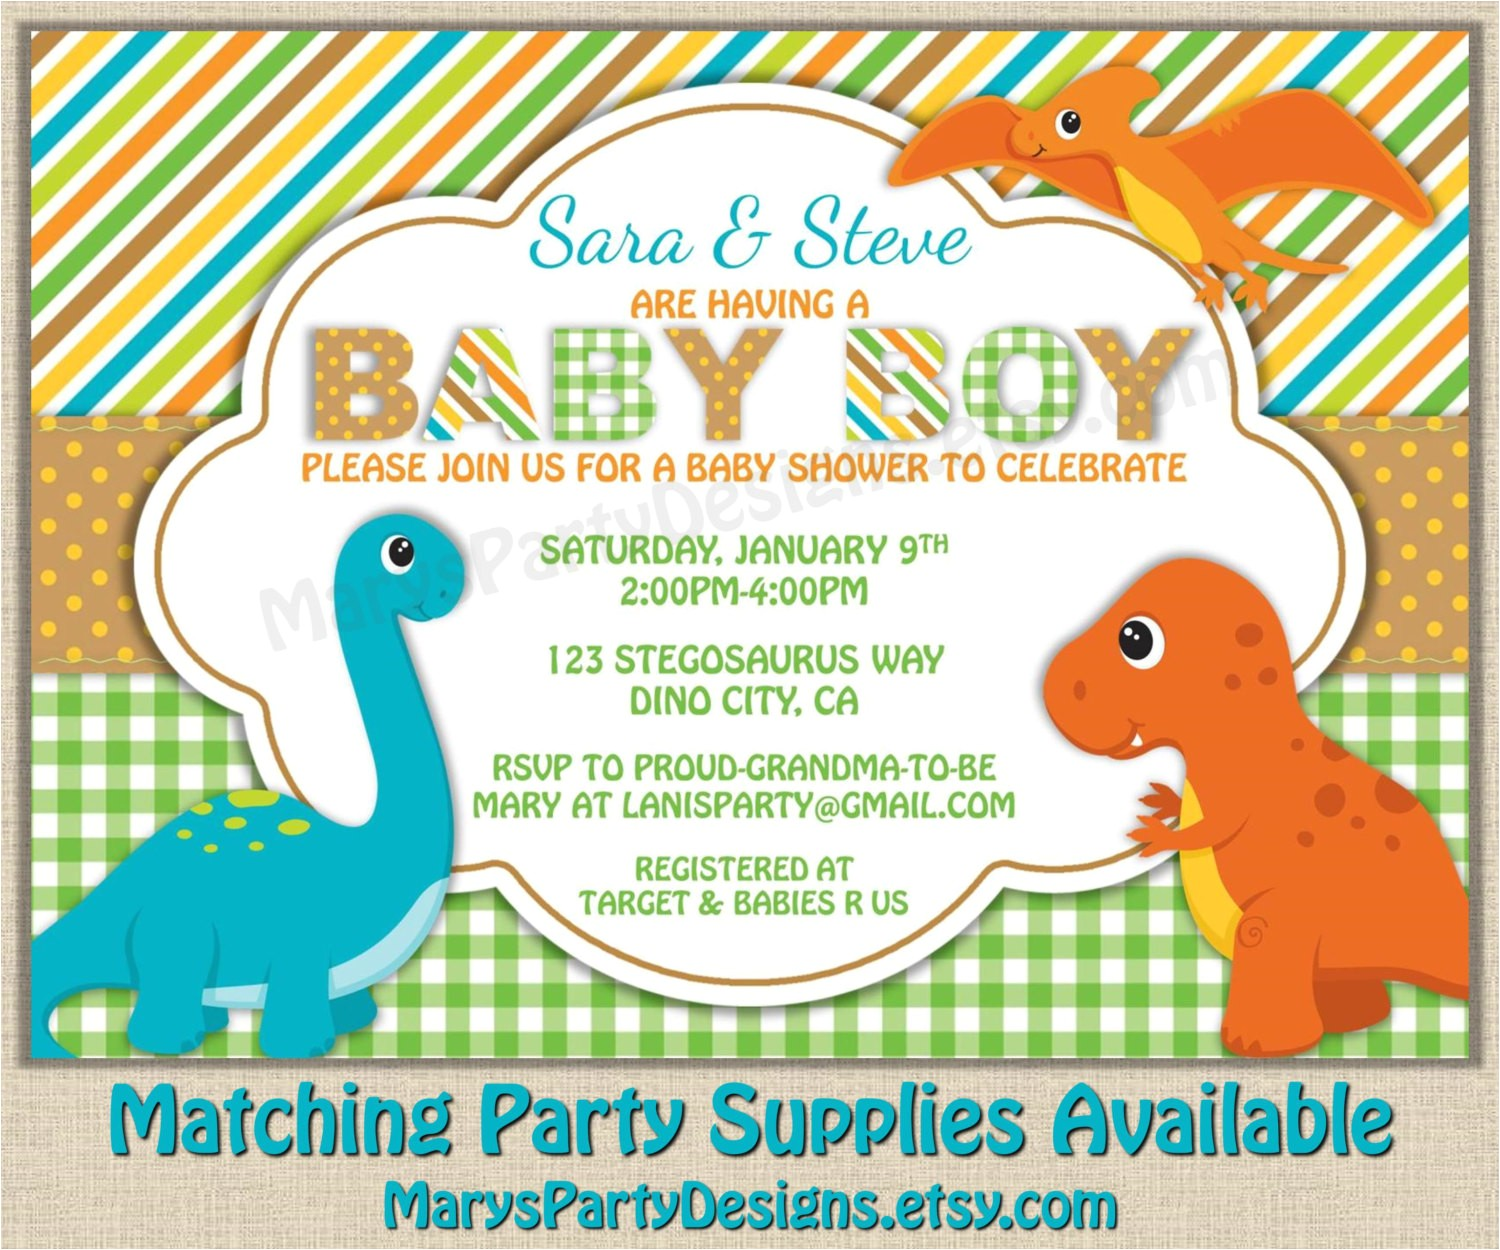 Baby Shower Invitations Dinosaur theme Dinosaur Baby Shower Invitation Dino Boy Diaper Party